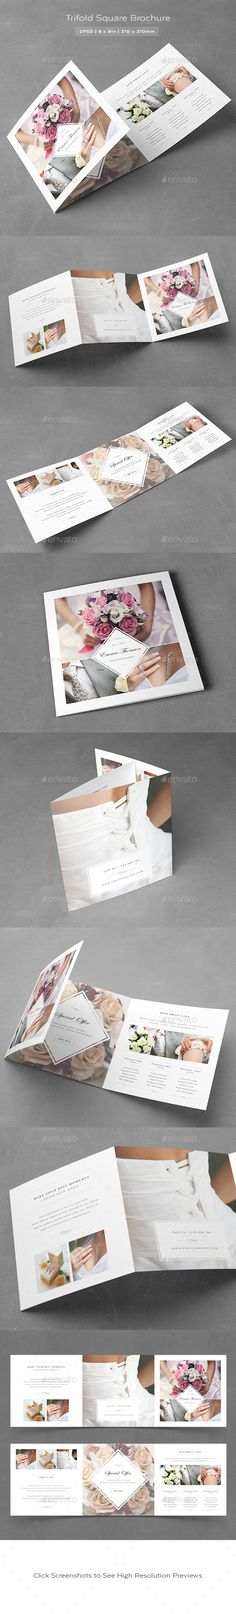 Photography Square Trifold Brochure - Informational Brochures